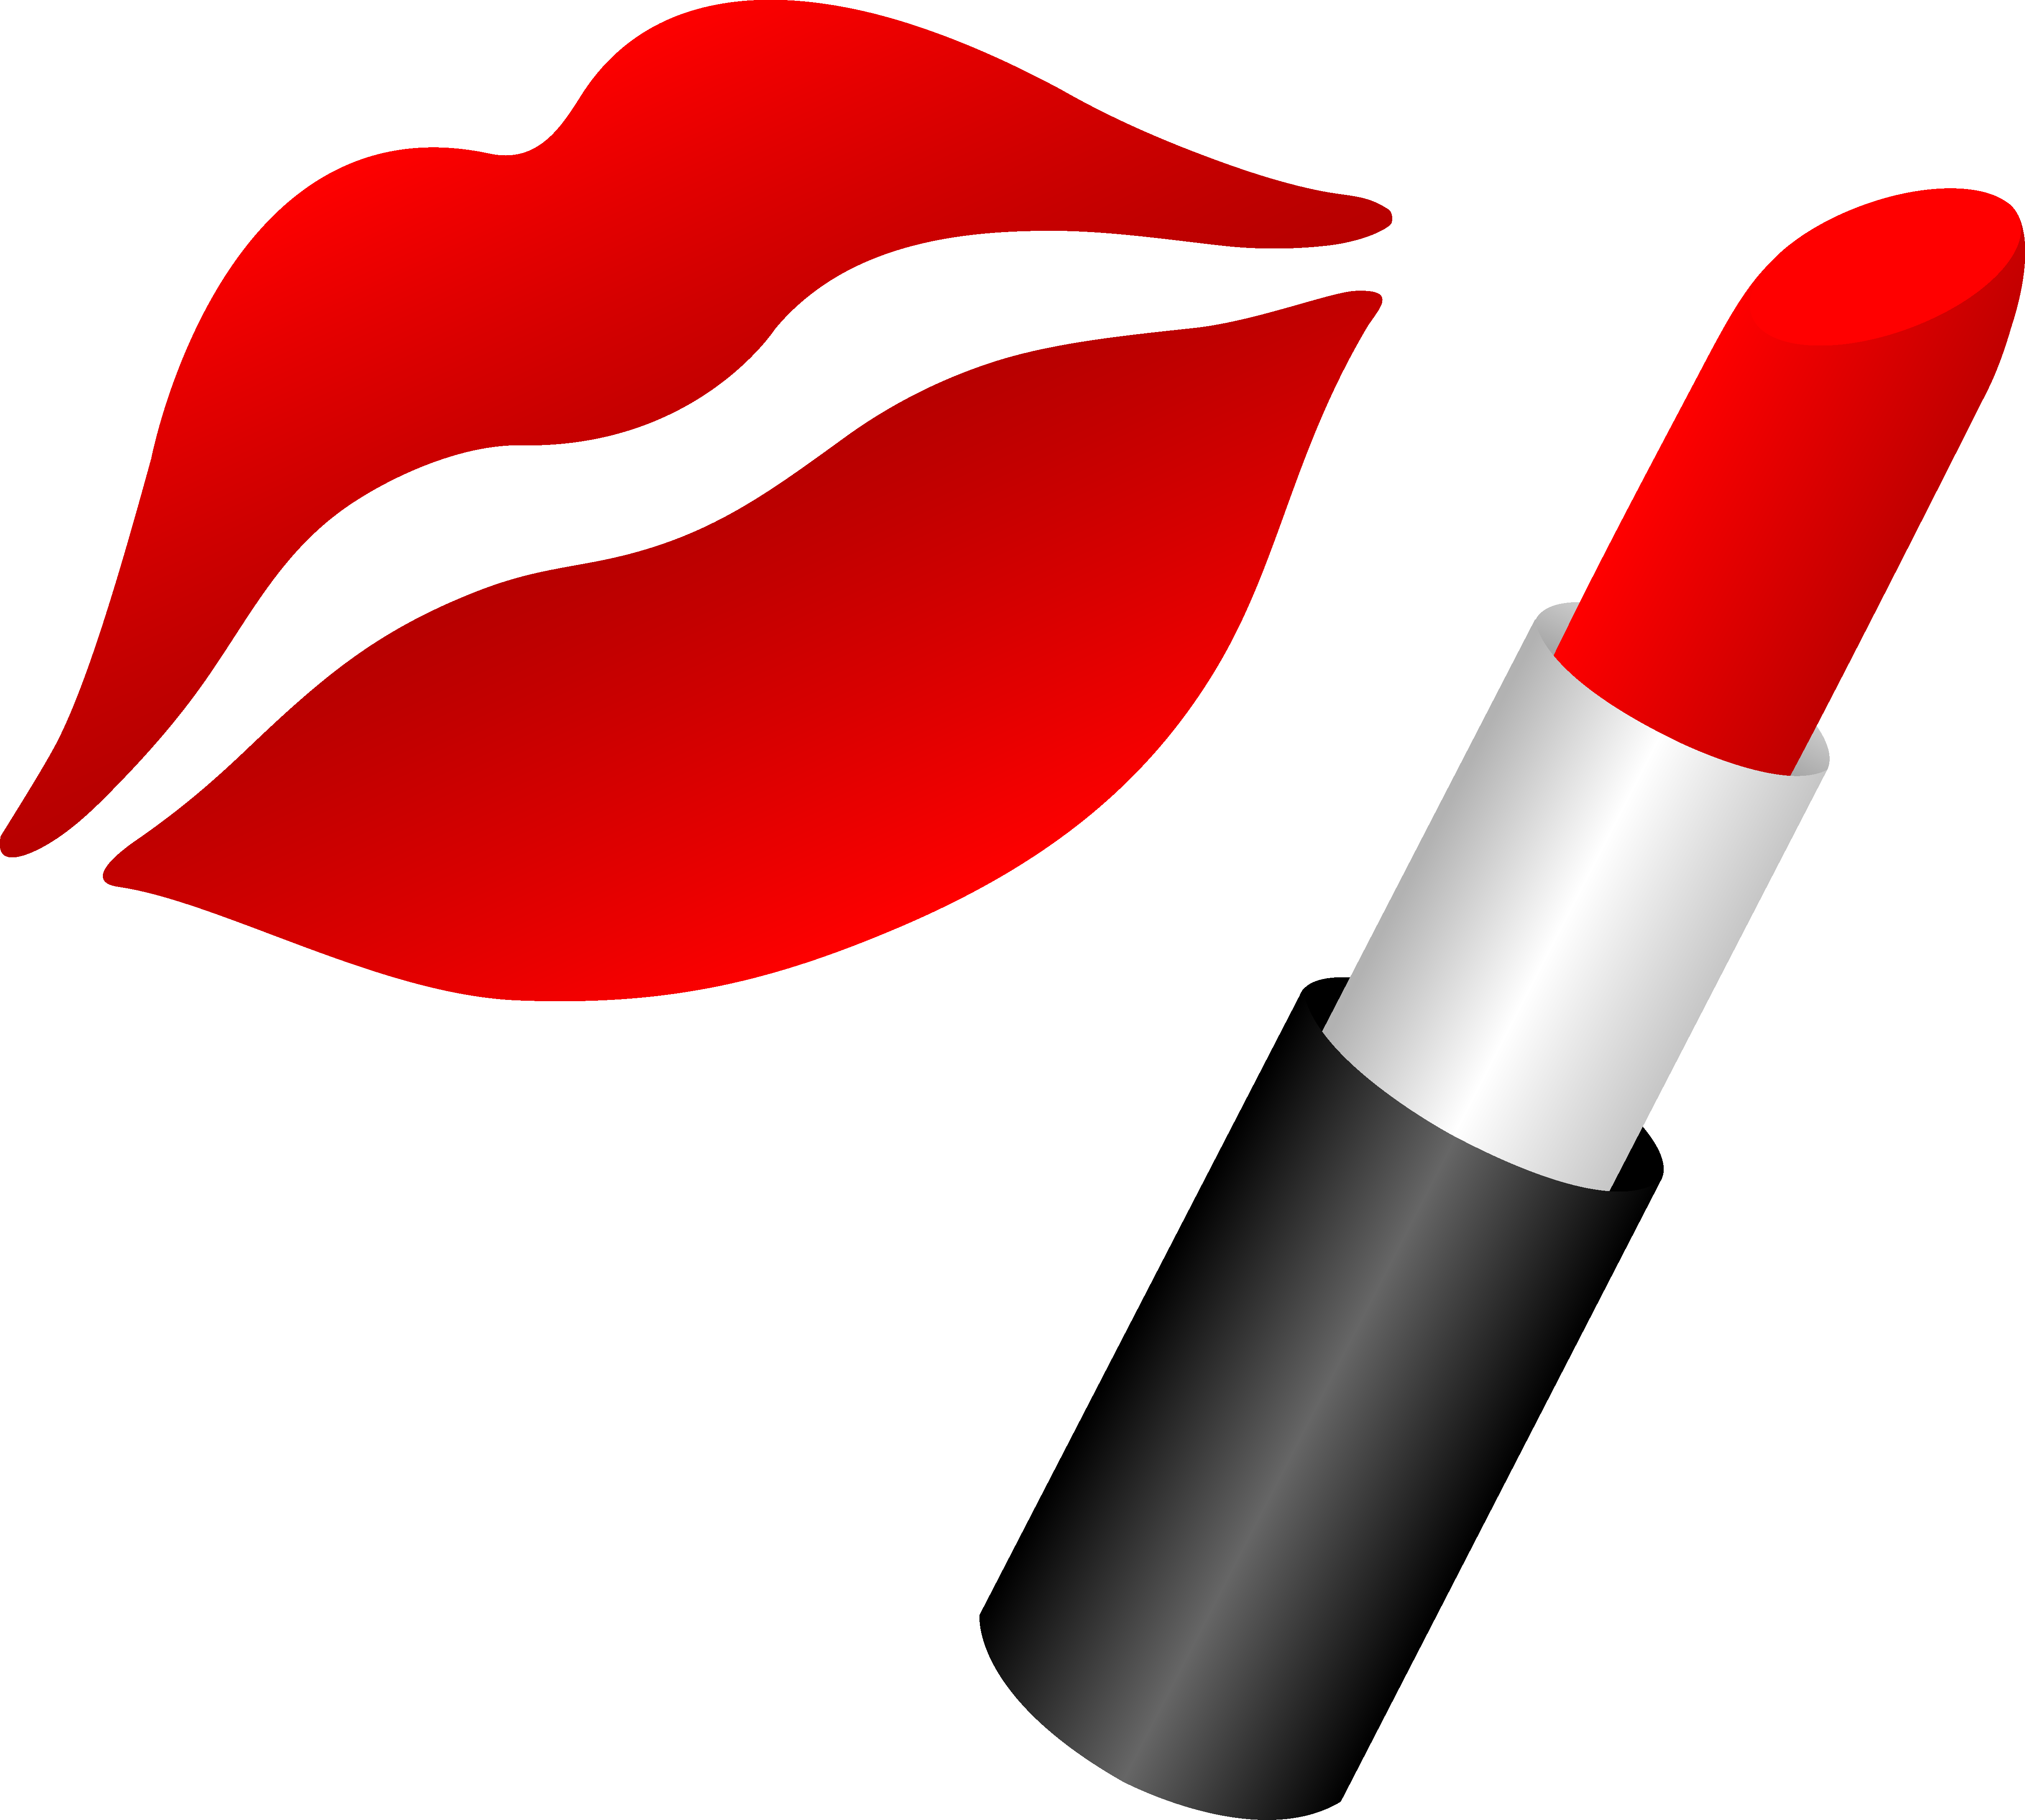 Pin on Red Lips.